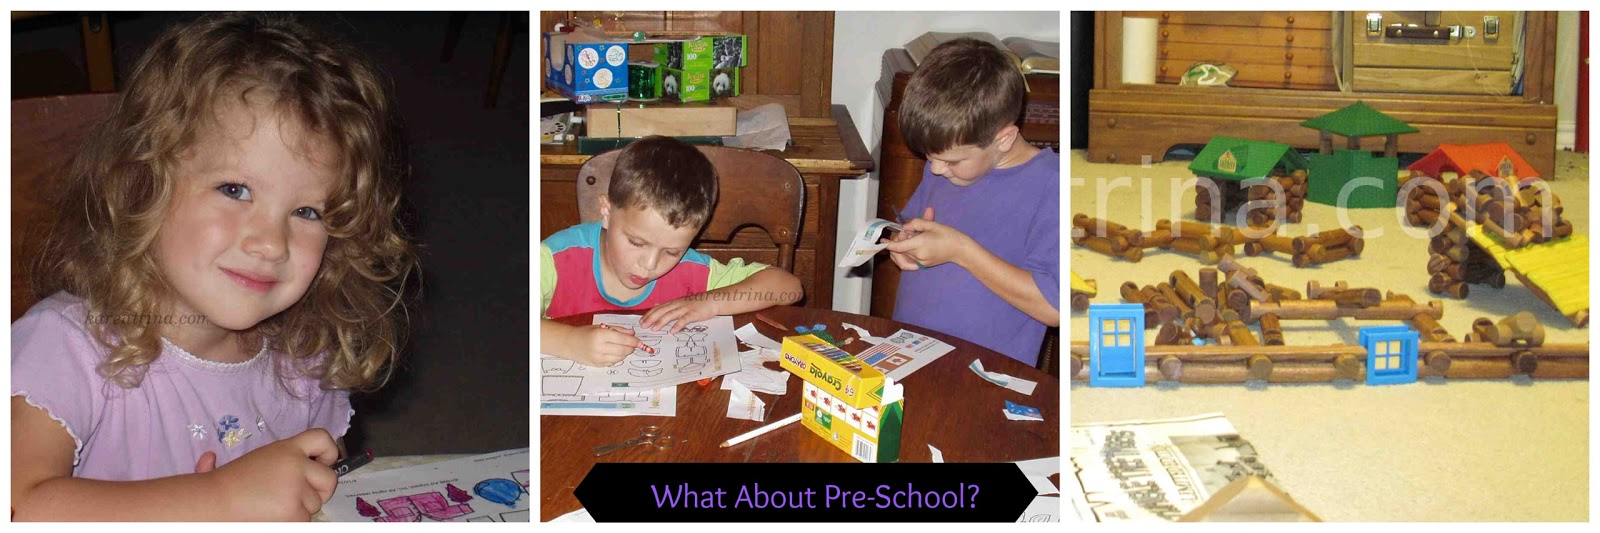 preschool activities, paper dolls